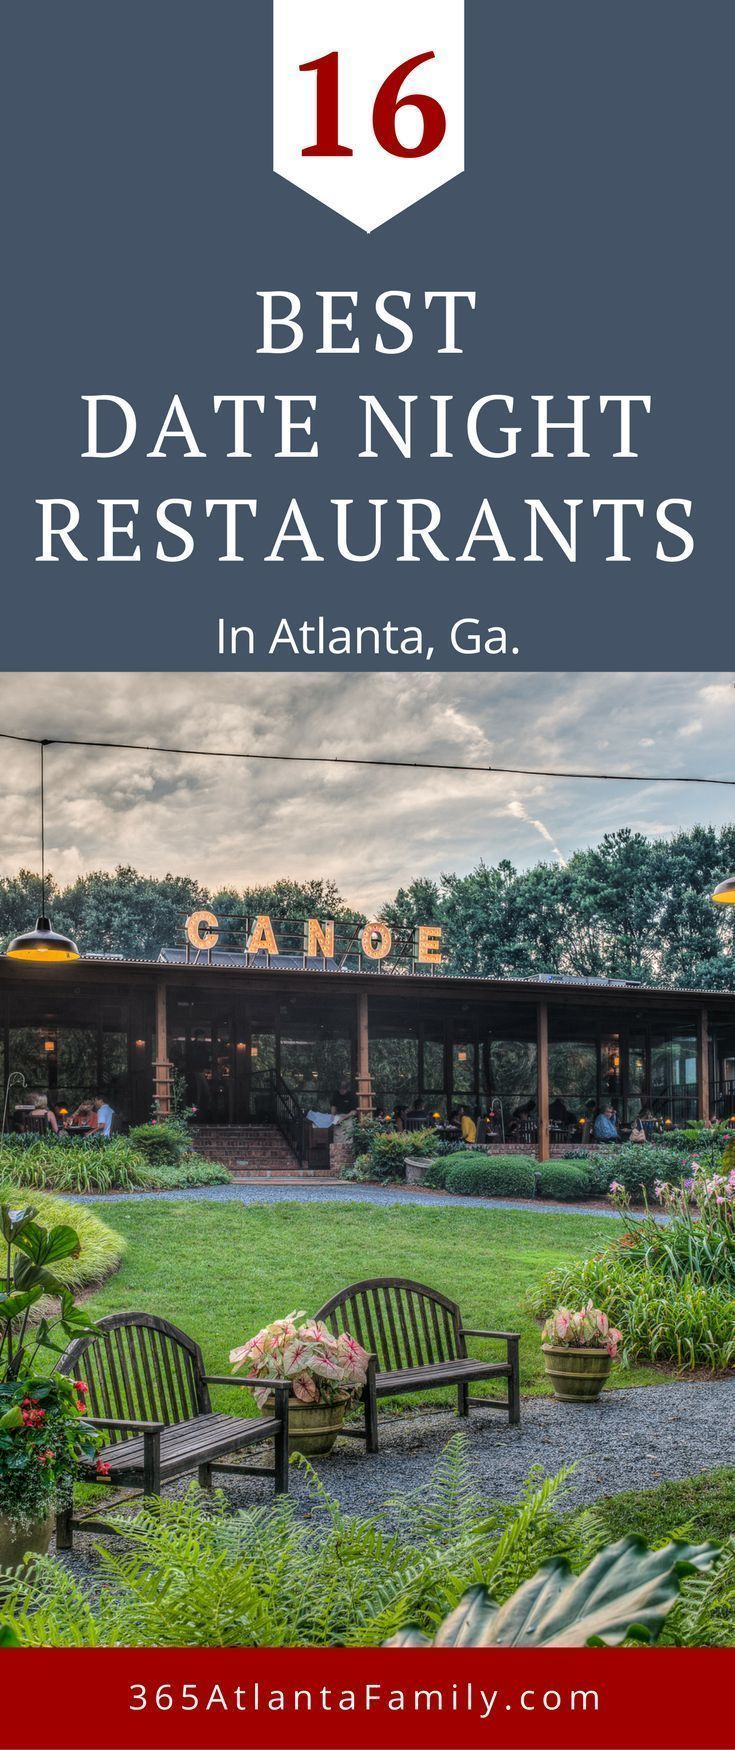 The Best Date Night Restaurants In Atlanta, Georgia. We introduce you to 16 of the best date night restaurants in Atlanta you won't want to miss. They boast romantic settings plus menus that skew toward sophisticated flavors with nary a chicken finger in sight, even the biggest foodies will love these recommendations. From downtown Atlanta, to Midtown, to Buckhead, we've vetted the cuisine and settings to keep the guesswork out, so that you can enjoy! #Atlanta #Georgia #Buckhead #travel #foodie